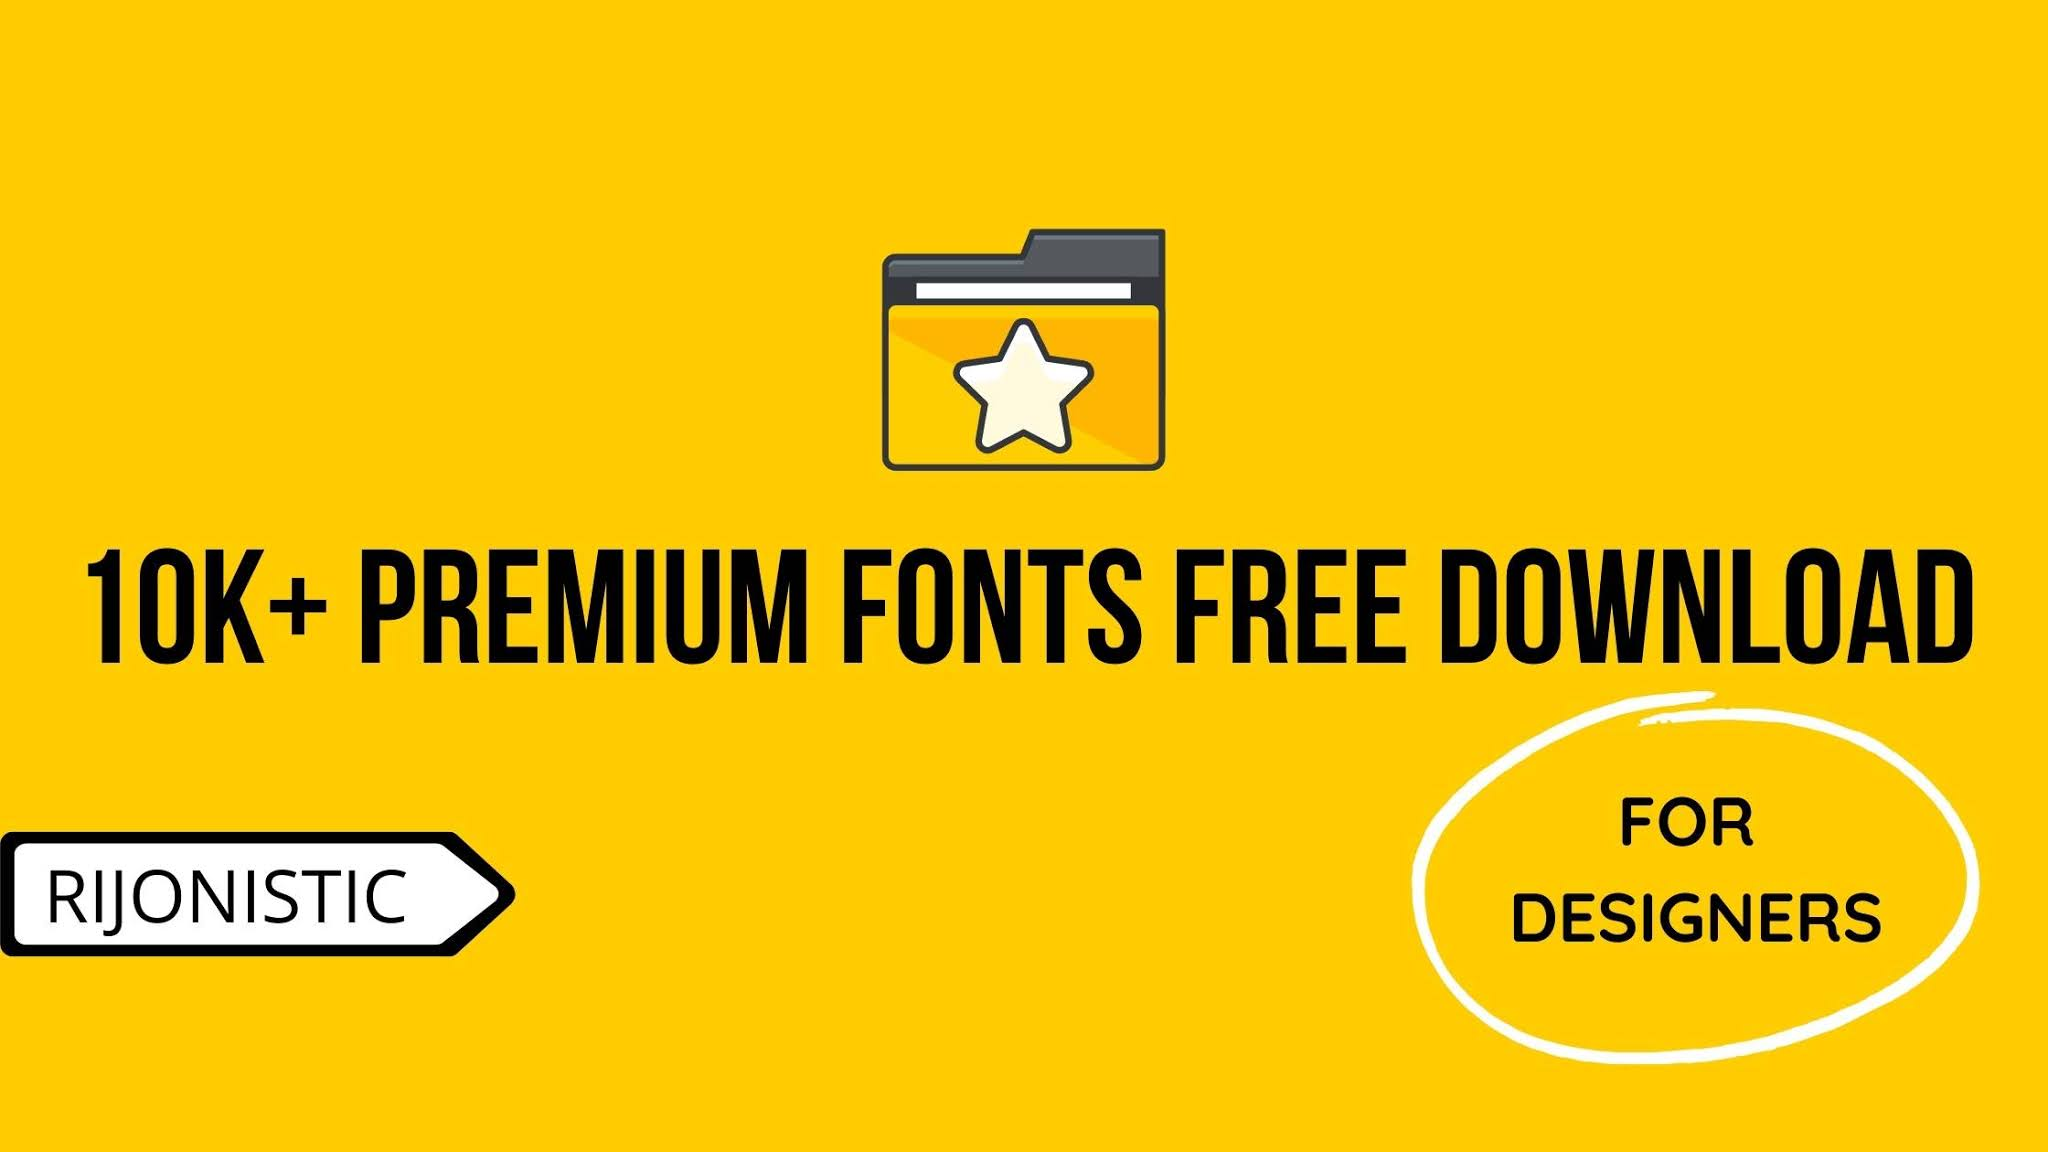 10k+ Premium Fonts Collection, Font Collection 2020, Premium Fonts, Download fonts,